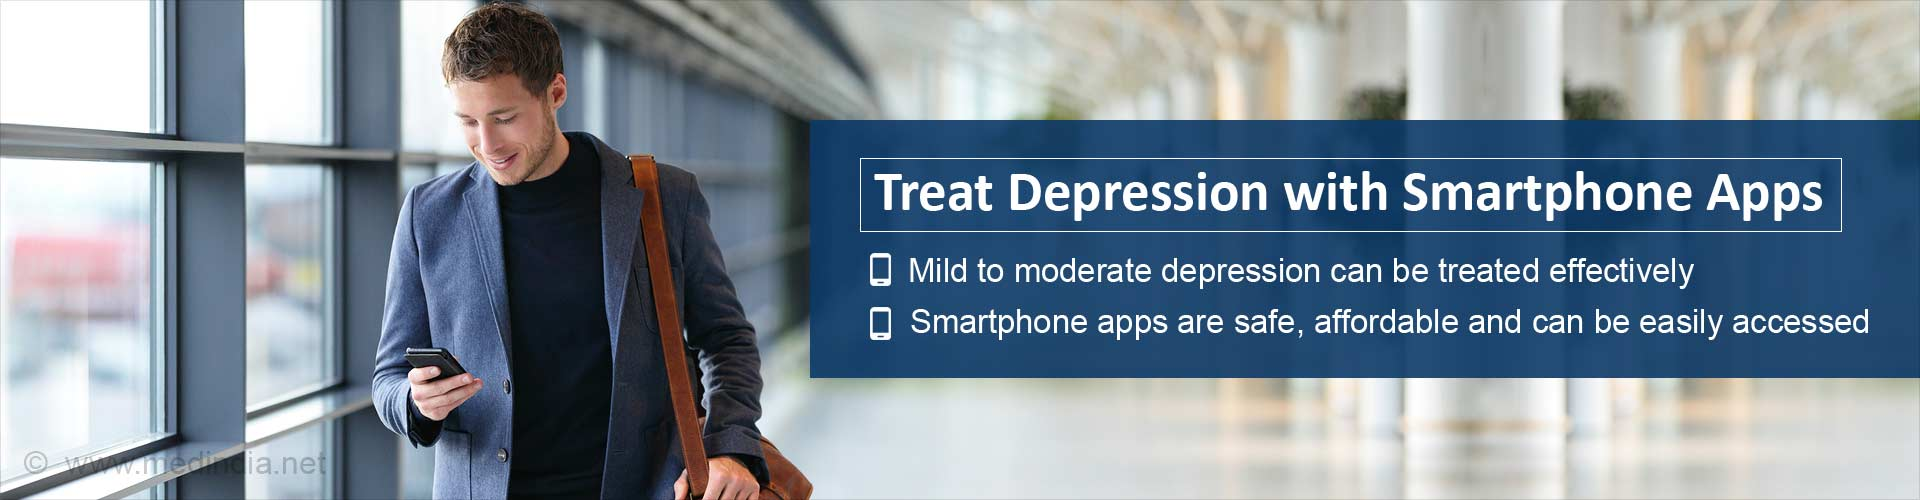 Treat depression with smartphone apps - Mild to moderate depression can be treated effectively - Smartphone apps are safe, affordable and can be easily accessed